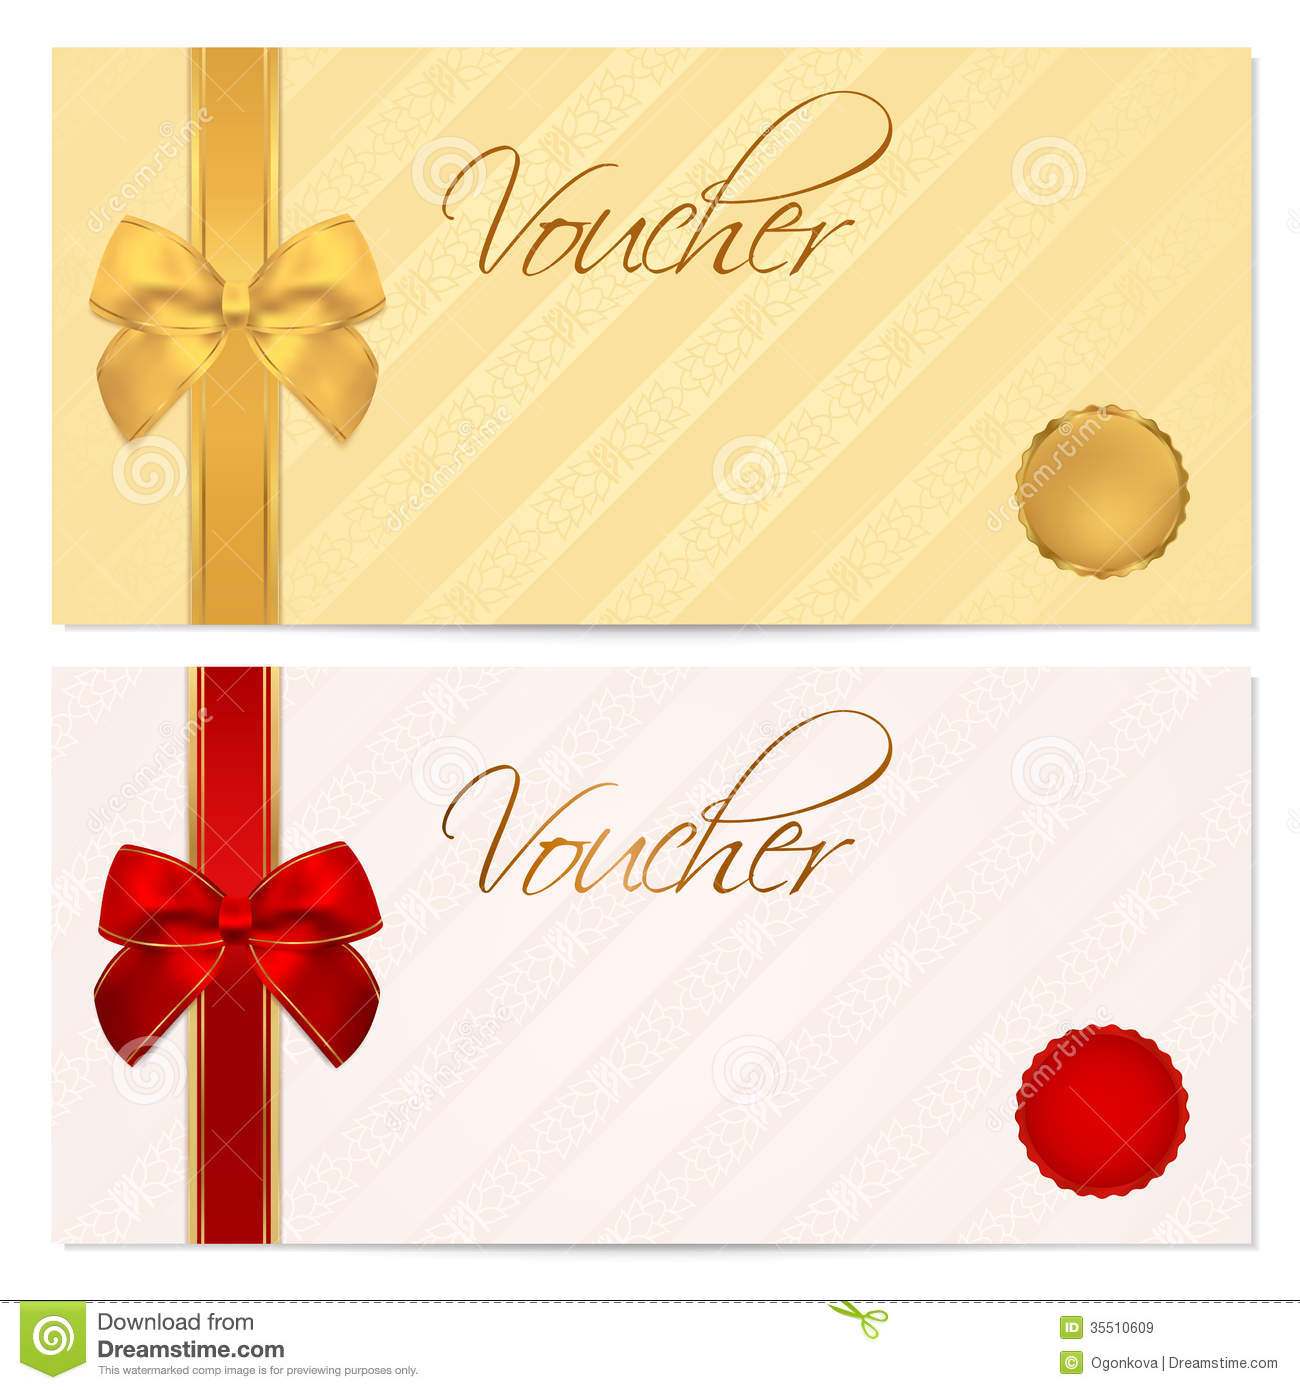 Vouchers Template 5 Gift Voucher Templates for Creating Gift – Voucher Template Free